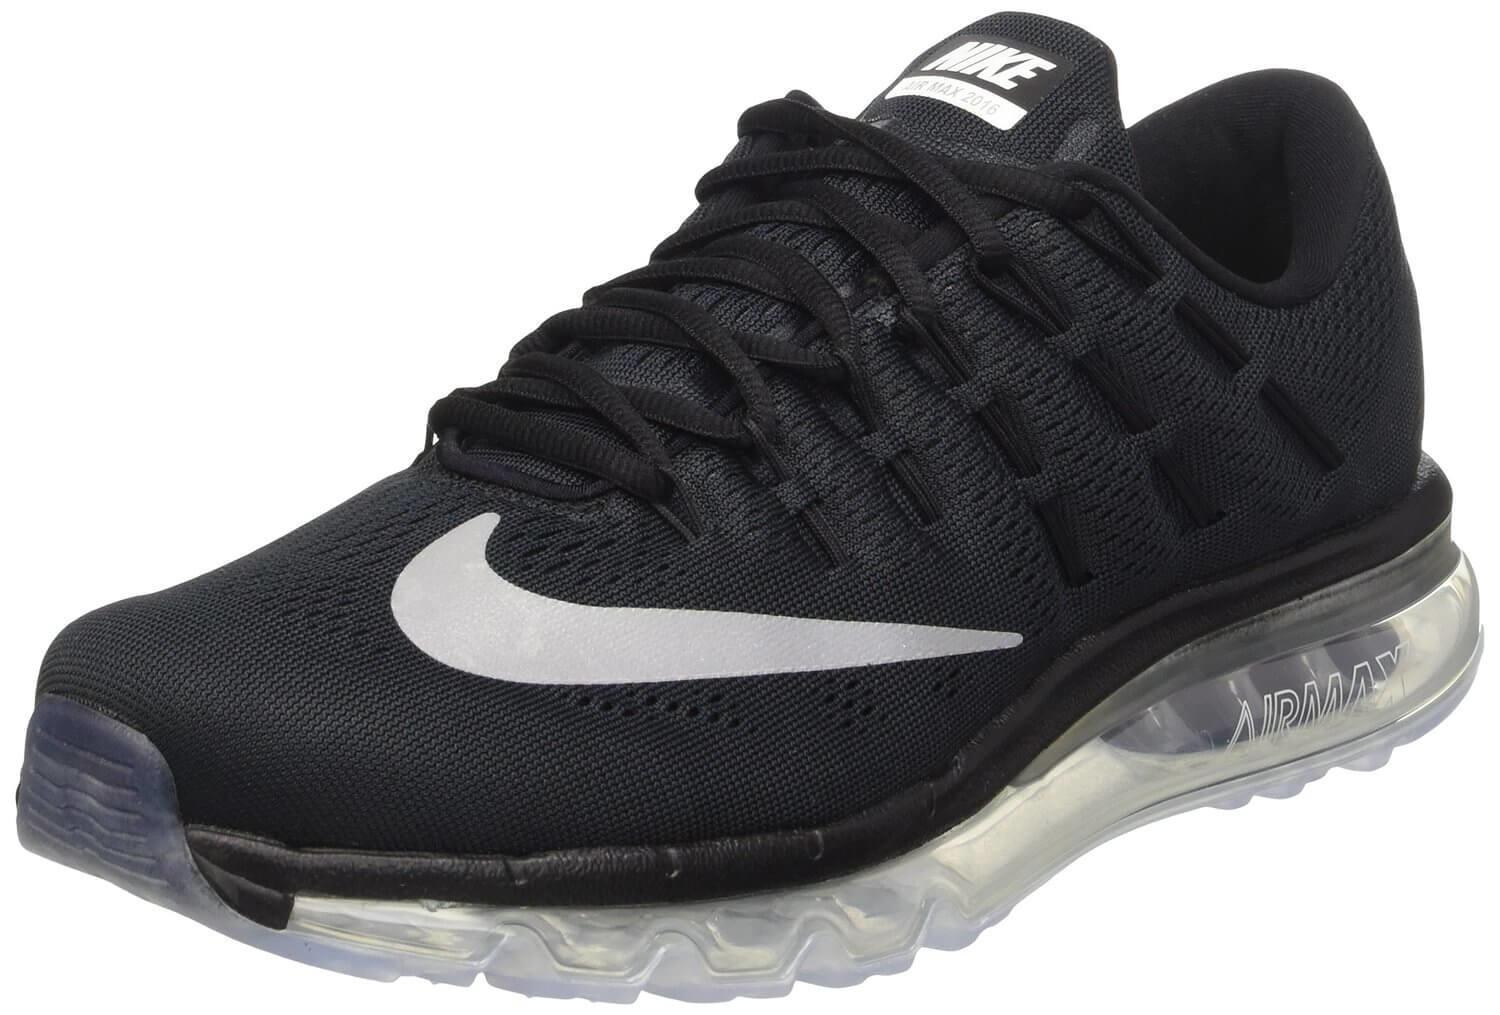 2a82a427aa With a simplistic design, the Nike Air Max 2016 is still a very stylish shoe  ...